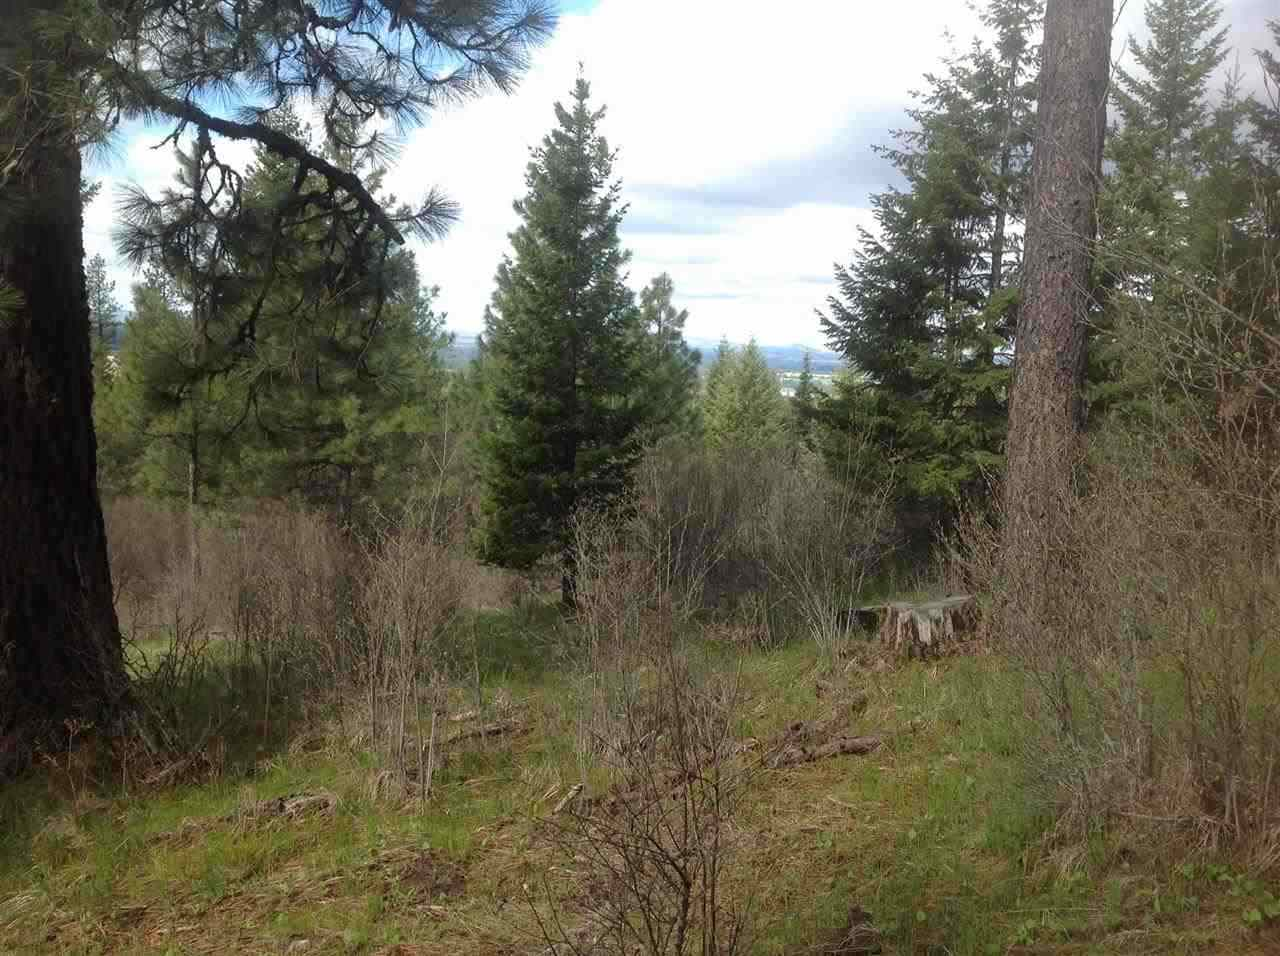 Recreational Property for Sale at Parcel 1810 Red Willow Road Parcel 1810 Red Willow Road Orofino, Idaho 83537